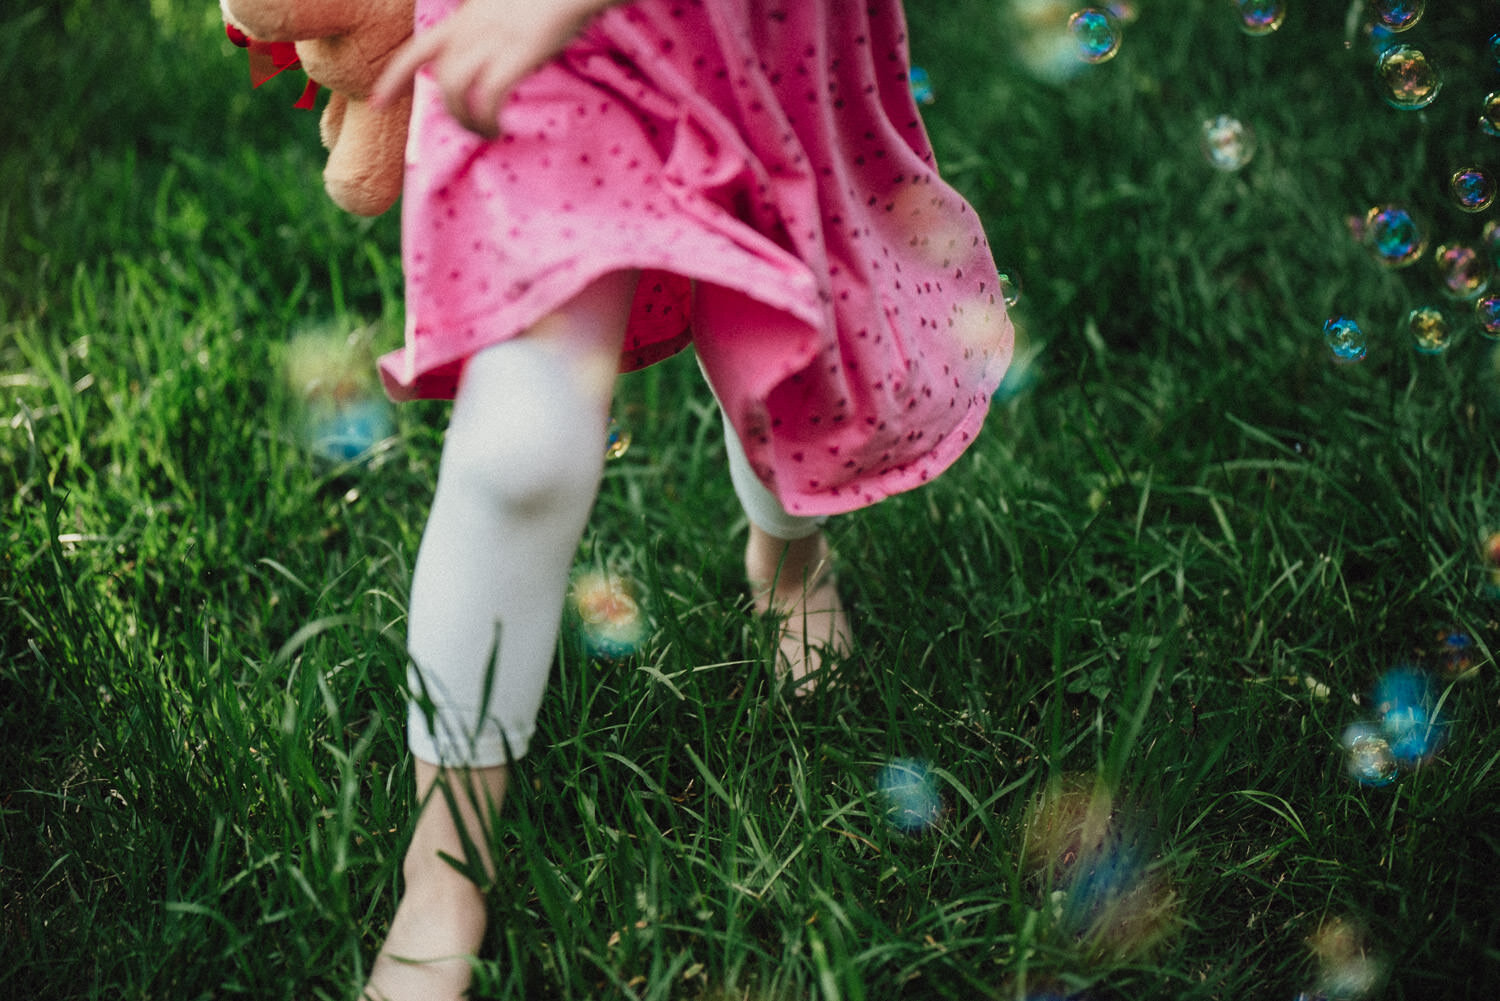 A little girl runs through some bubbles.